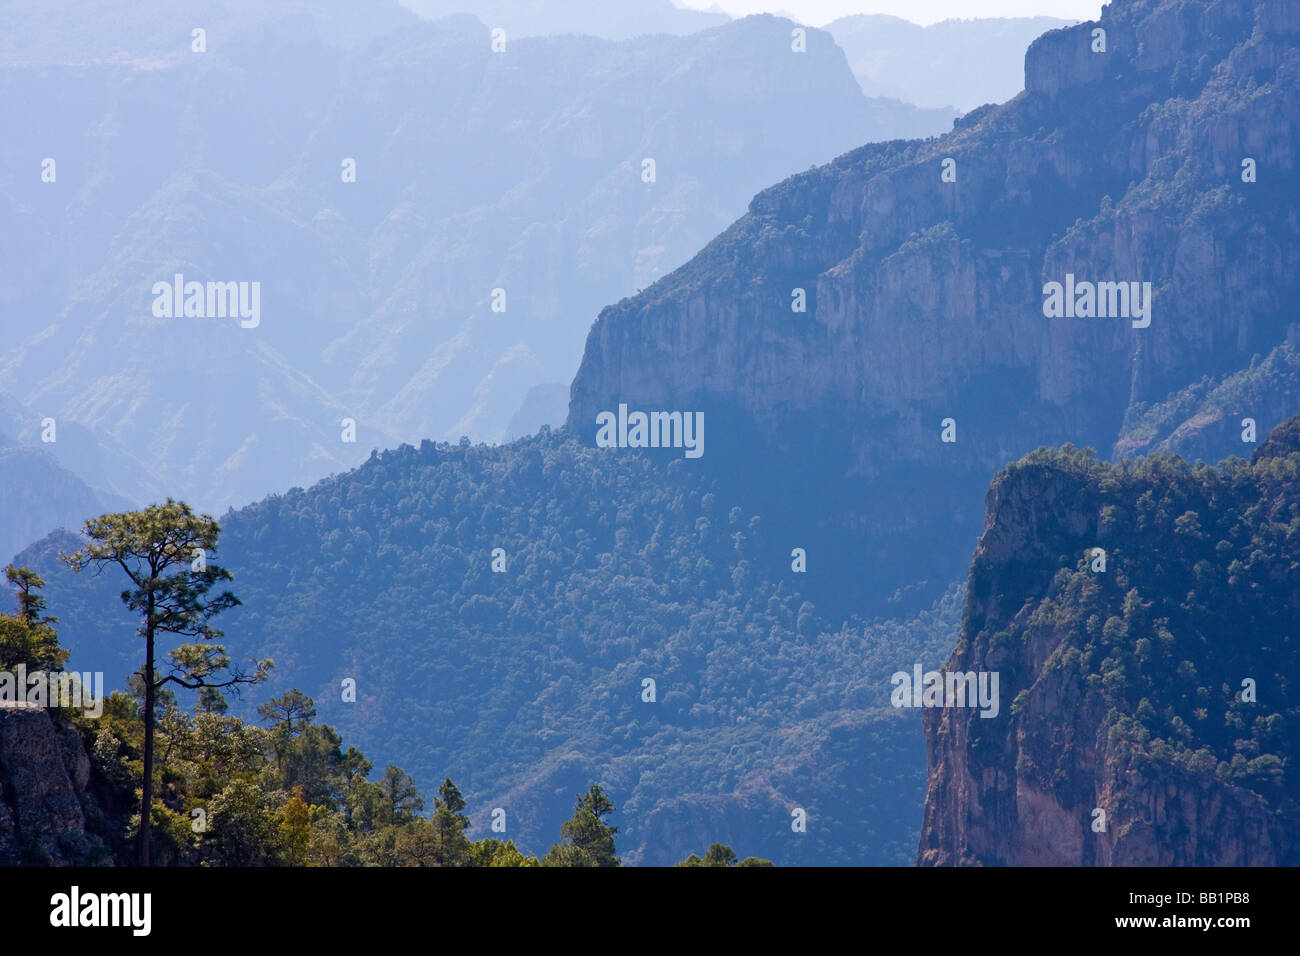 Copper Canyon in Mexico seen from a viewpoint. - Stock Image